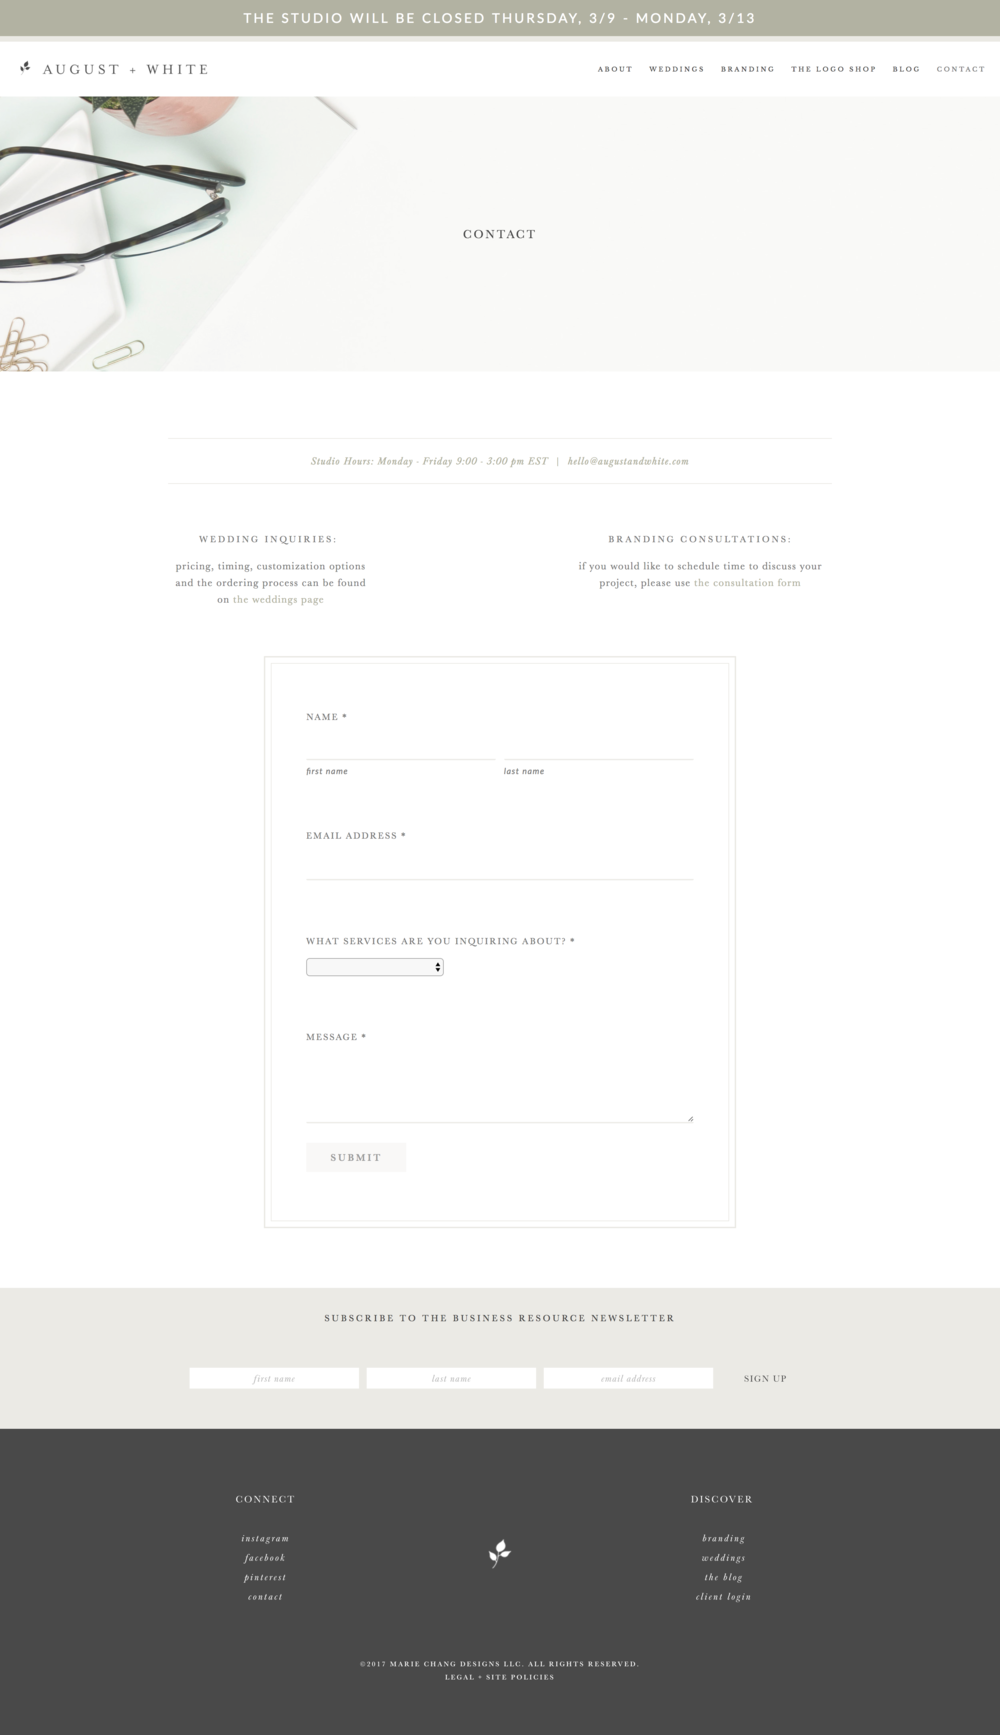 we are loving marie's contact form- to d.i.e. for!